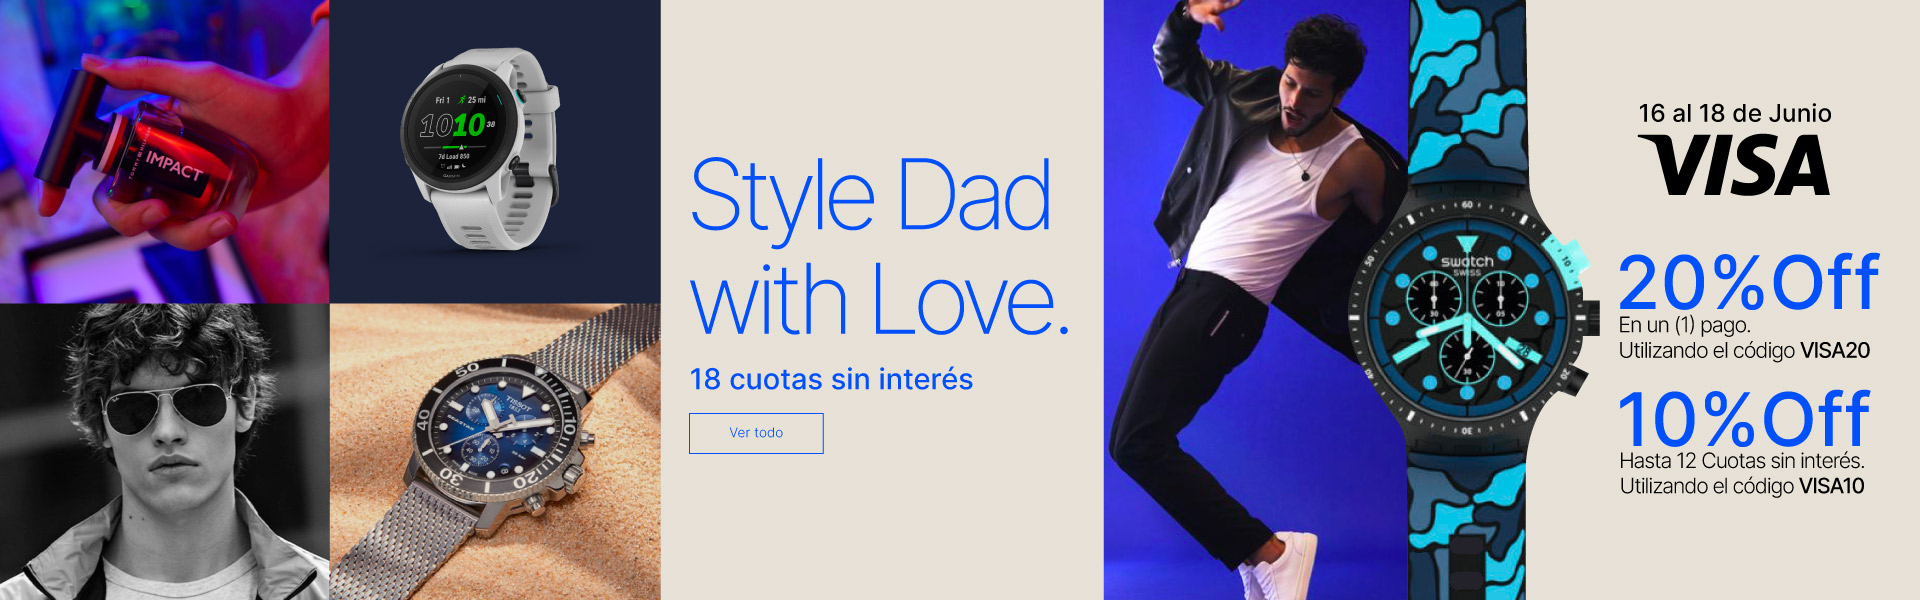 Style Dad